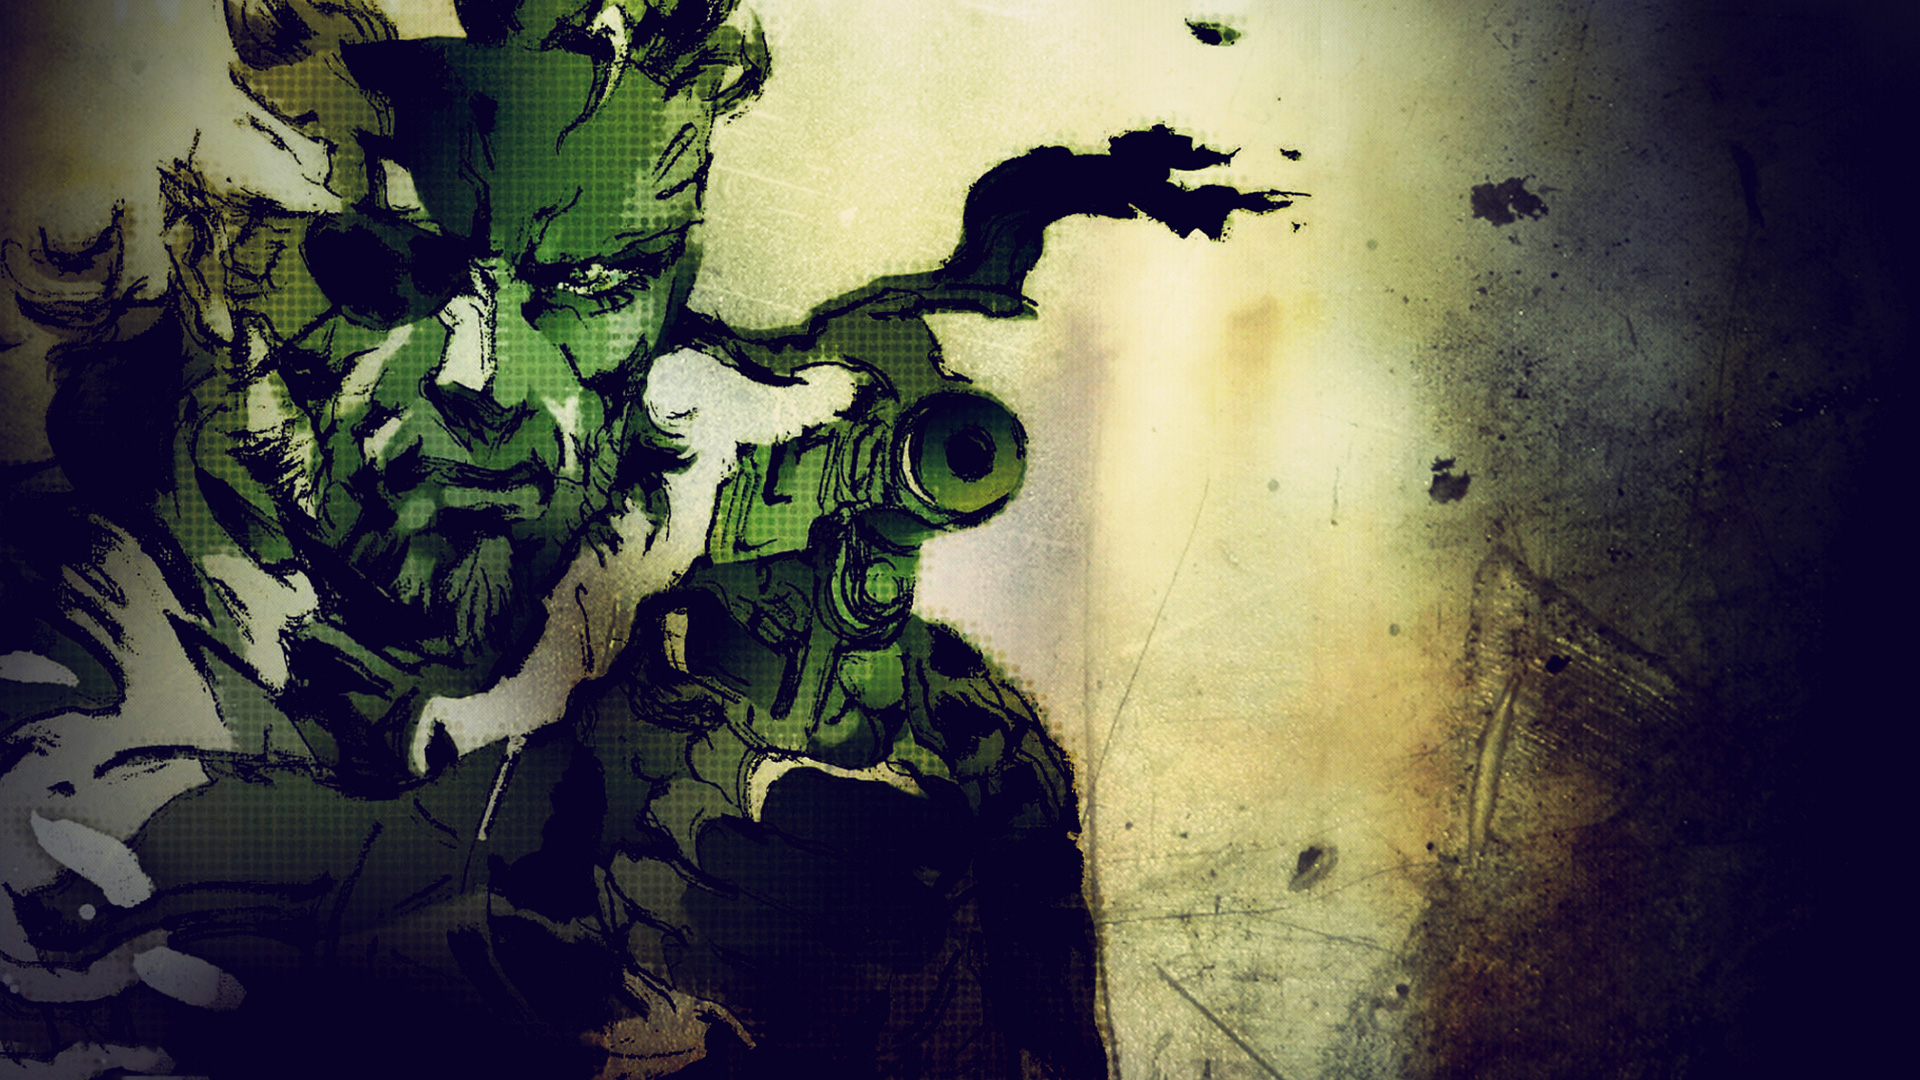 Metal Gear Solid Stealth Action Sony Playstation Wallpaper Hd Wallpapers